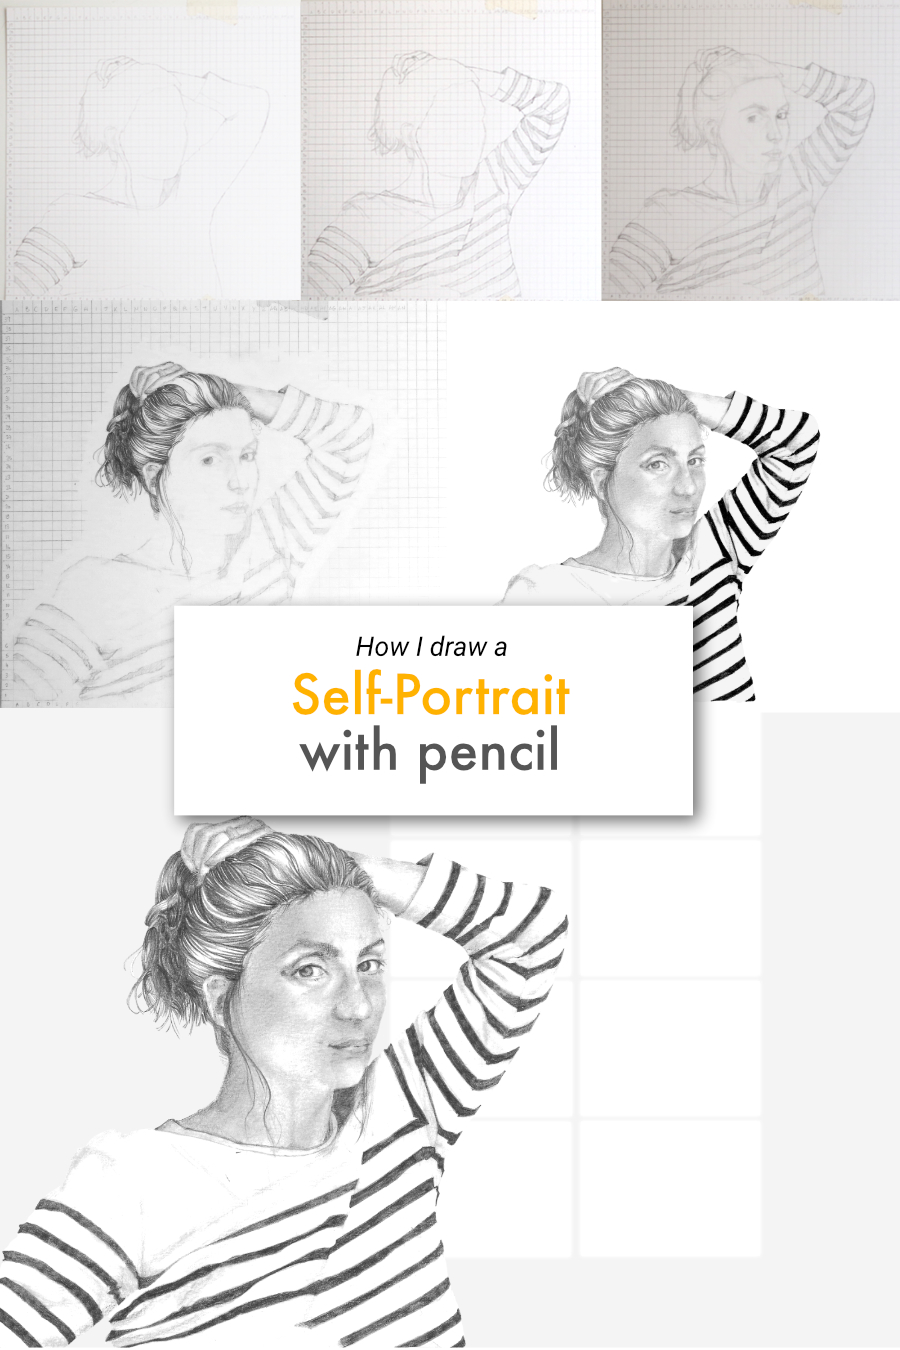 How I draw a self-portrait with pencil | by The Daily Atelier